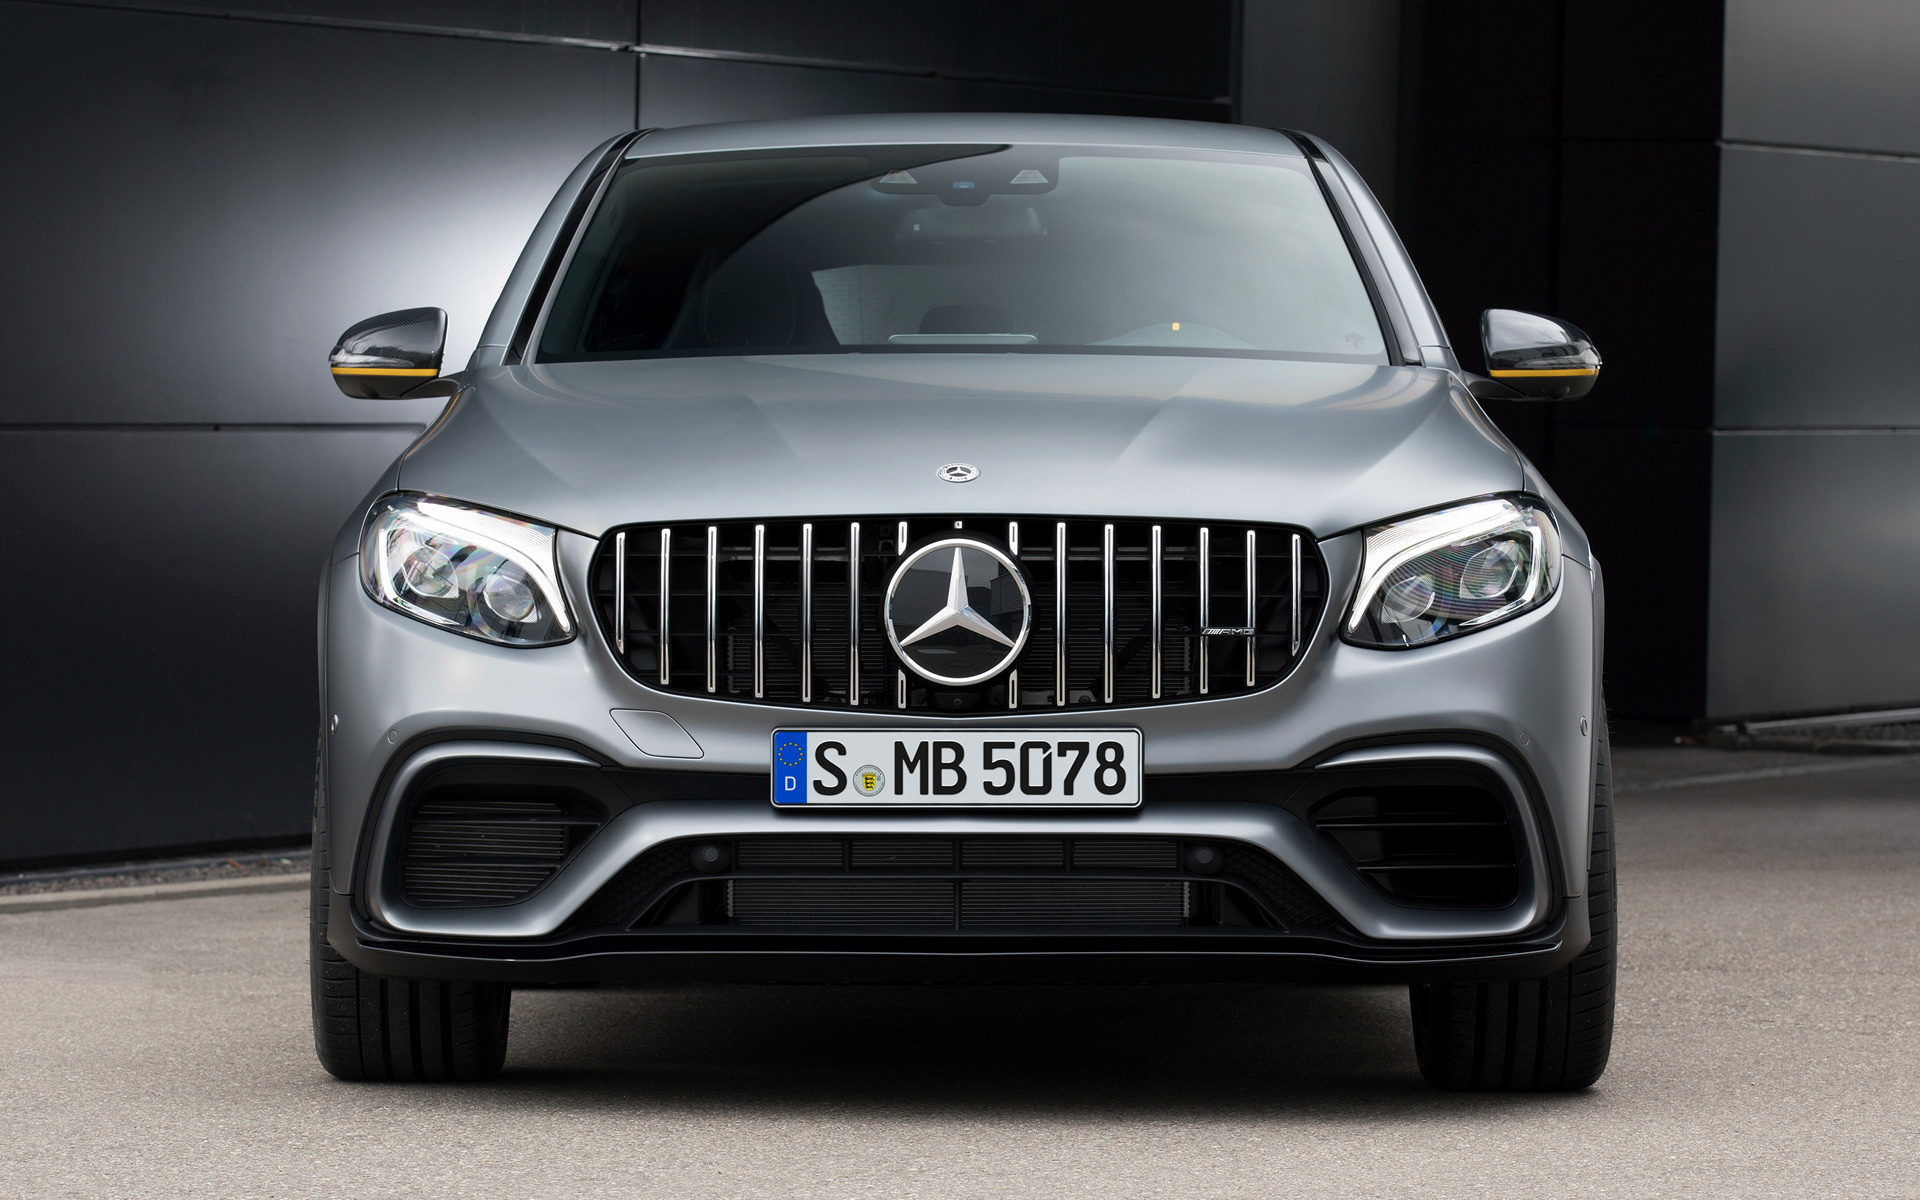 Mercedes-AMG GLC 63 S Coupe Edition 1 (2017) Wallpapers and HD Images - Car Pixel